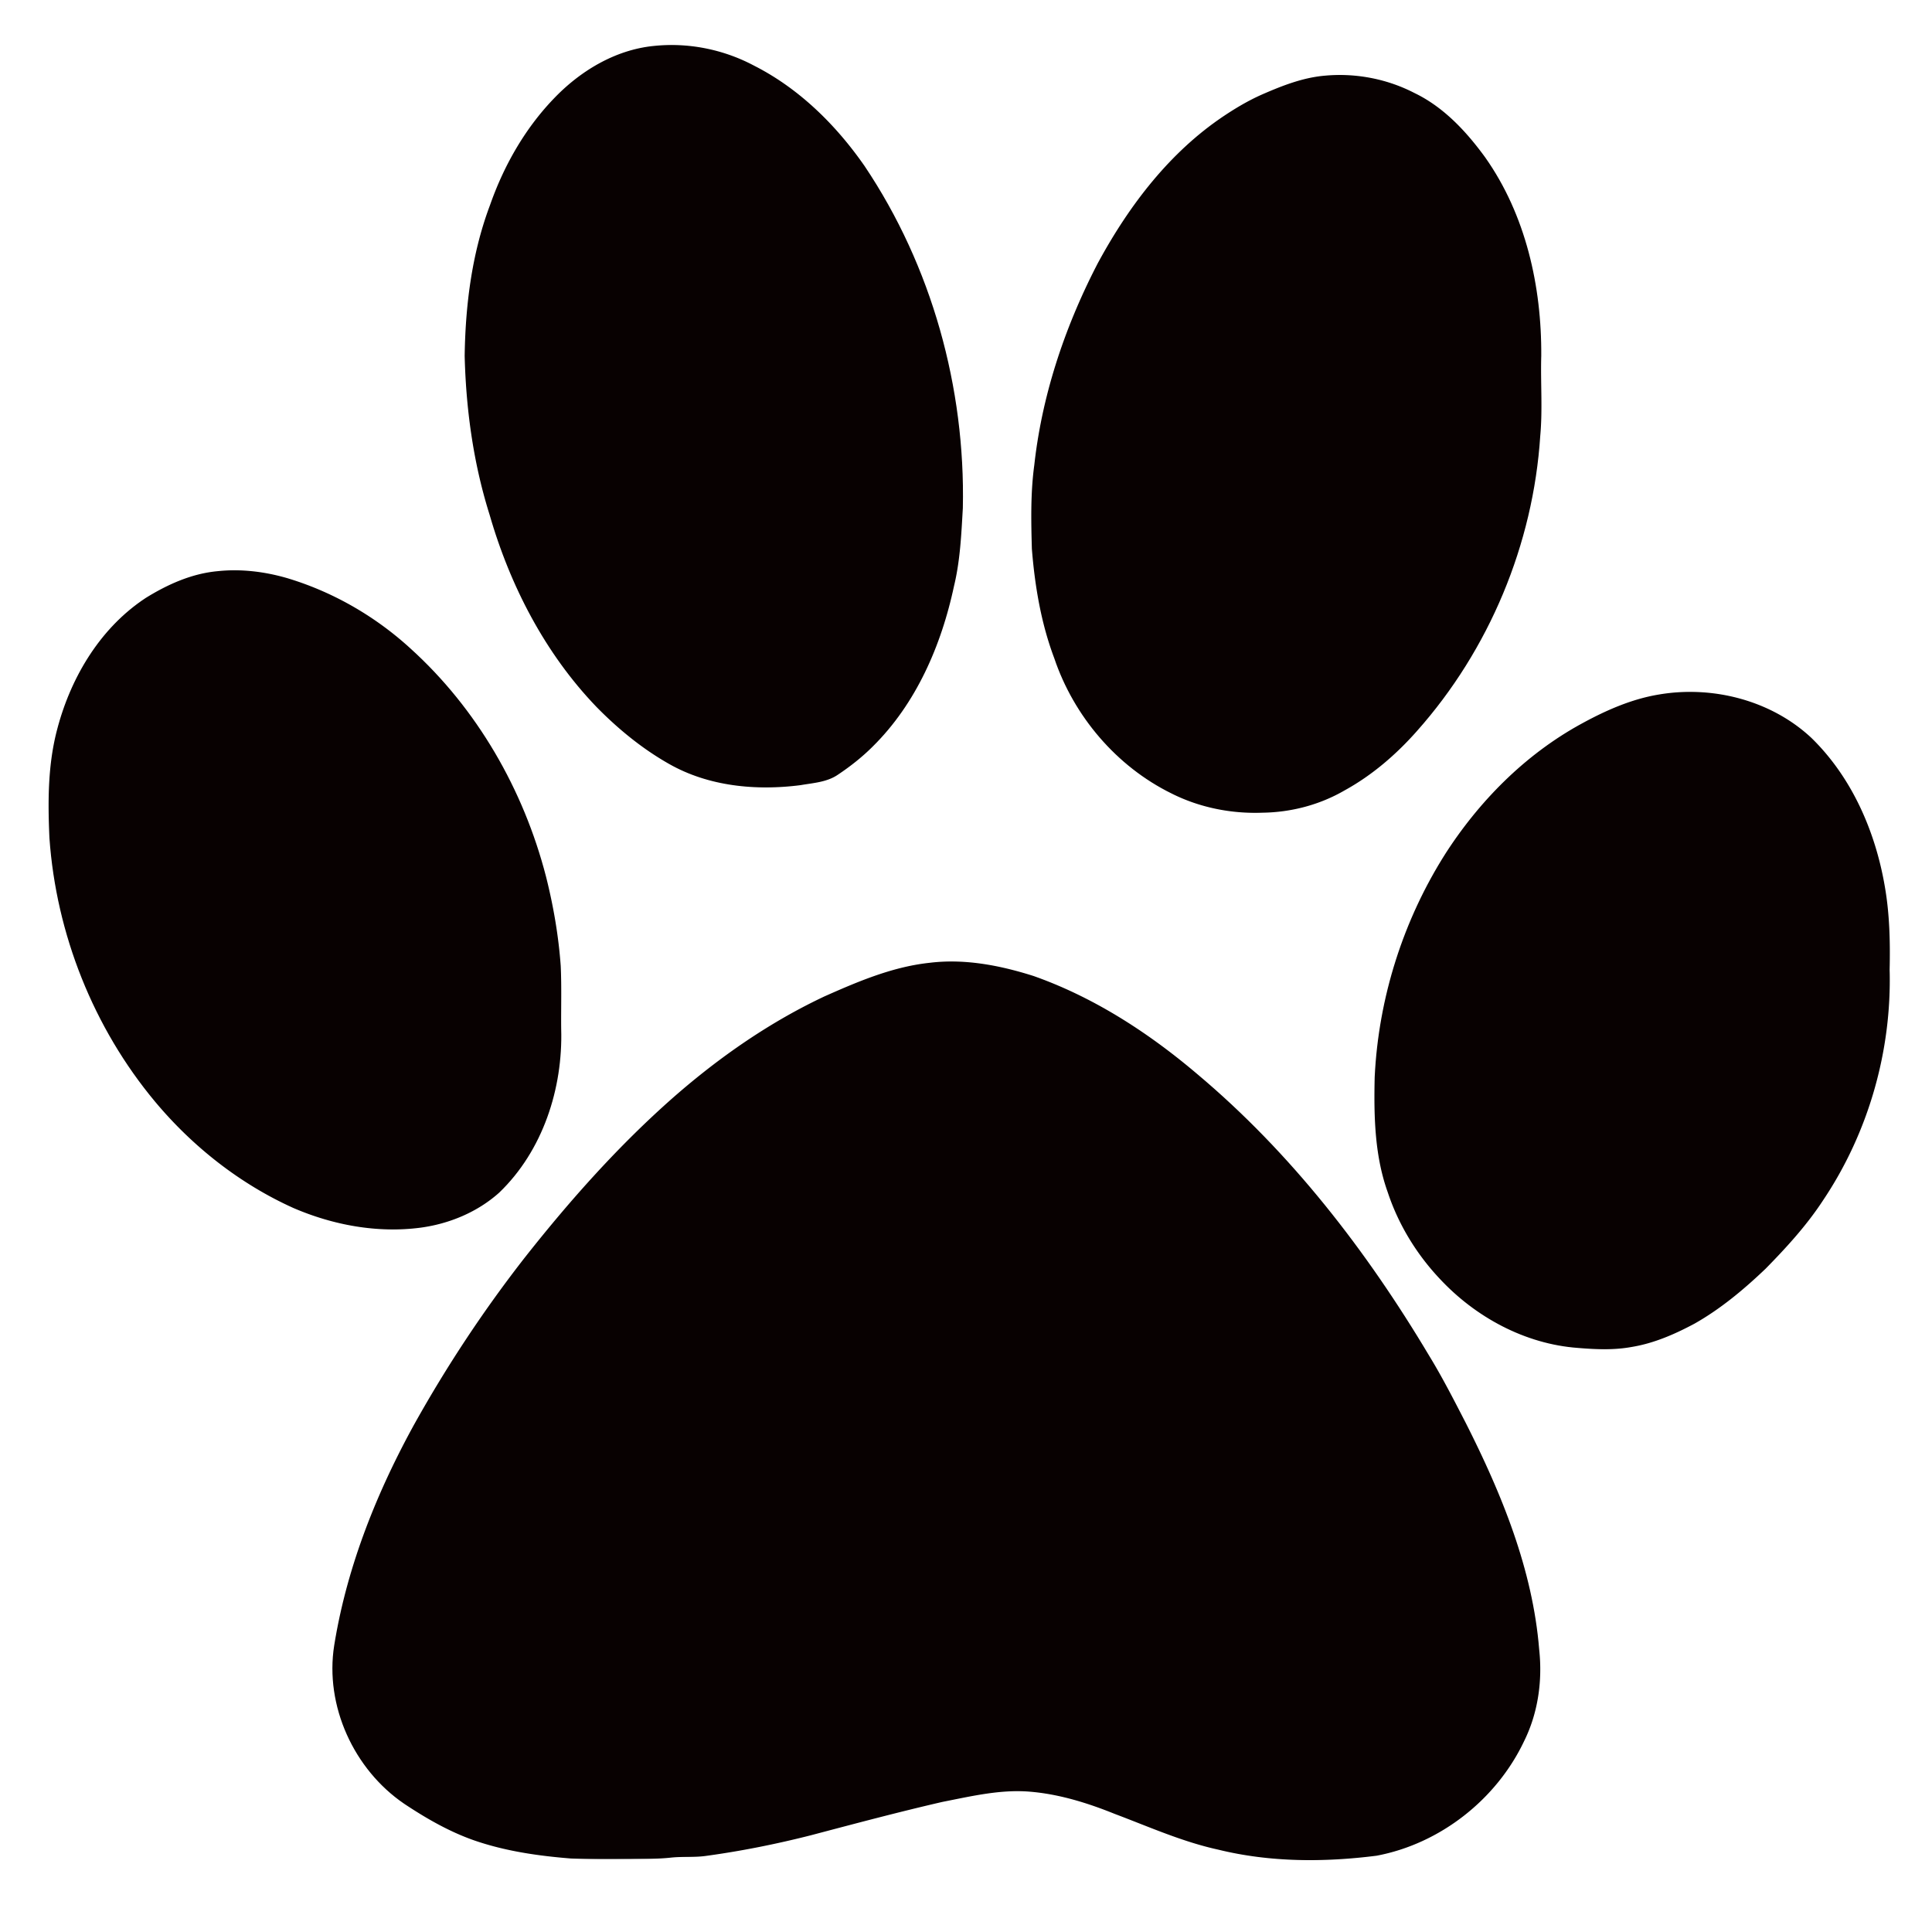 Claws vector panther. Paw print clip art